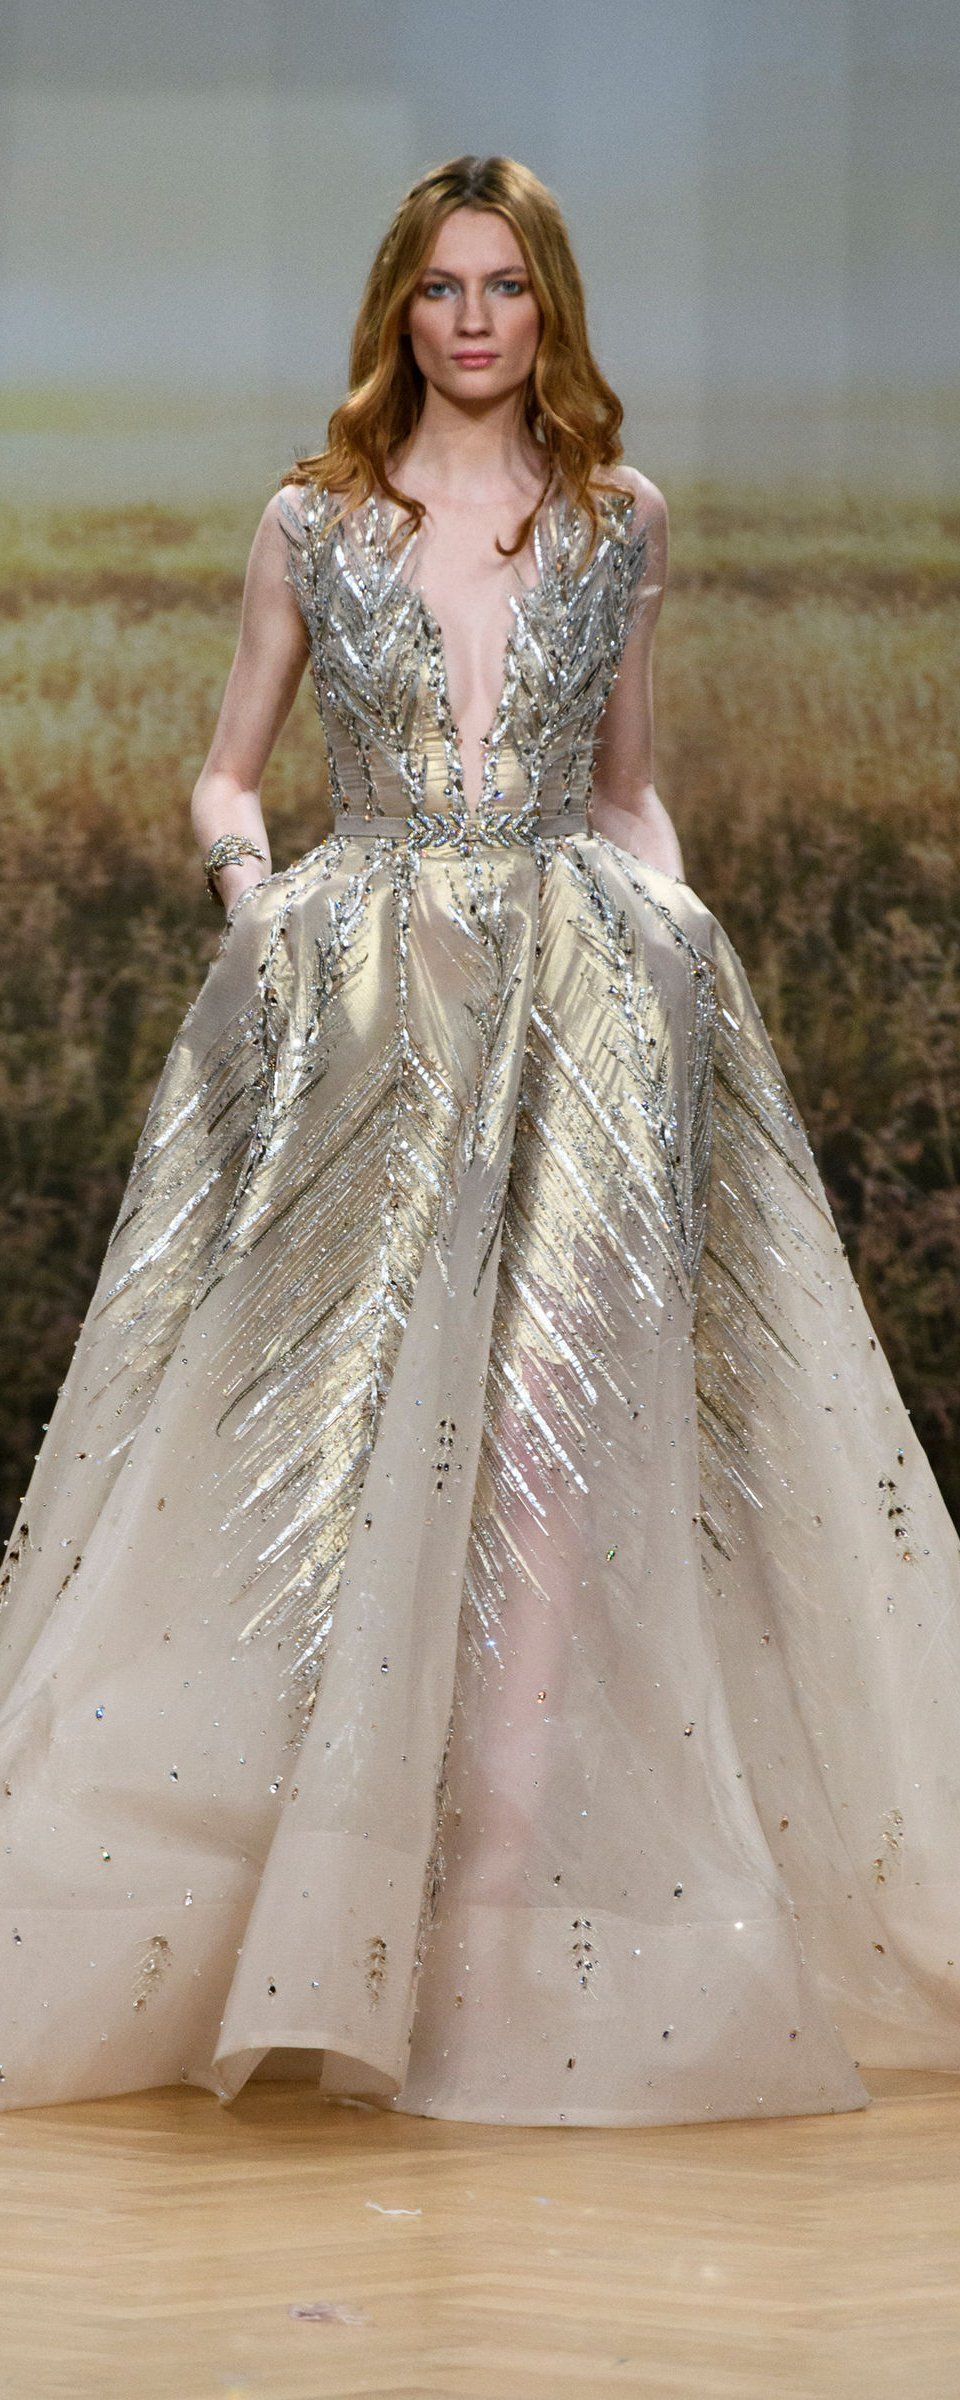 Ziad nakad springsummer couture gowns couture and fashion